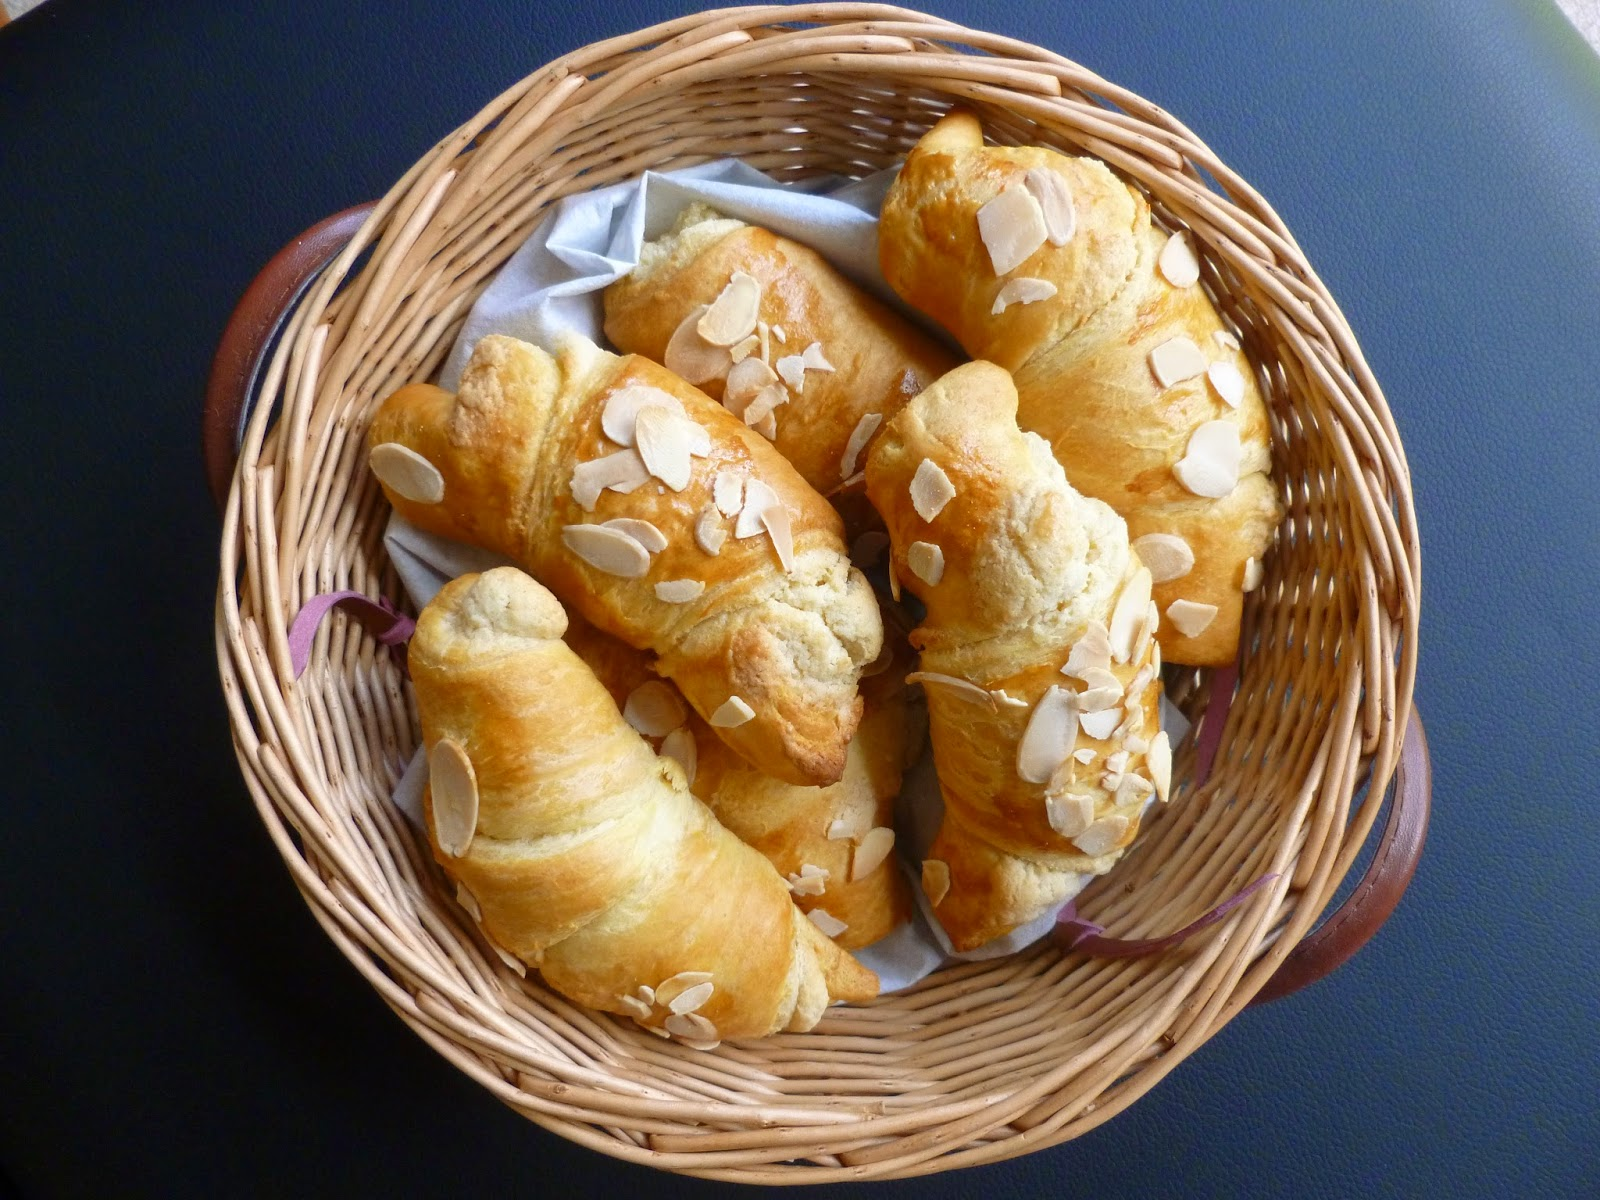 Basket of Almond Croissants